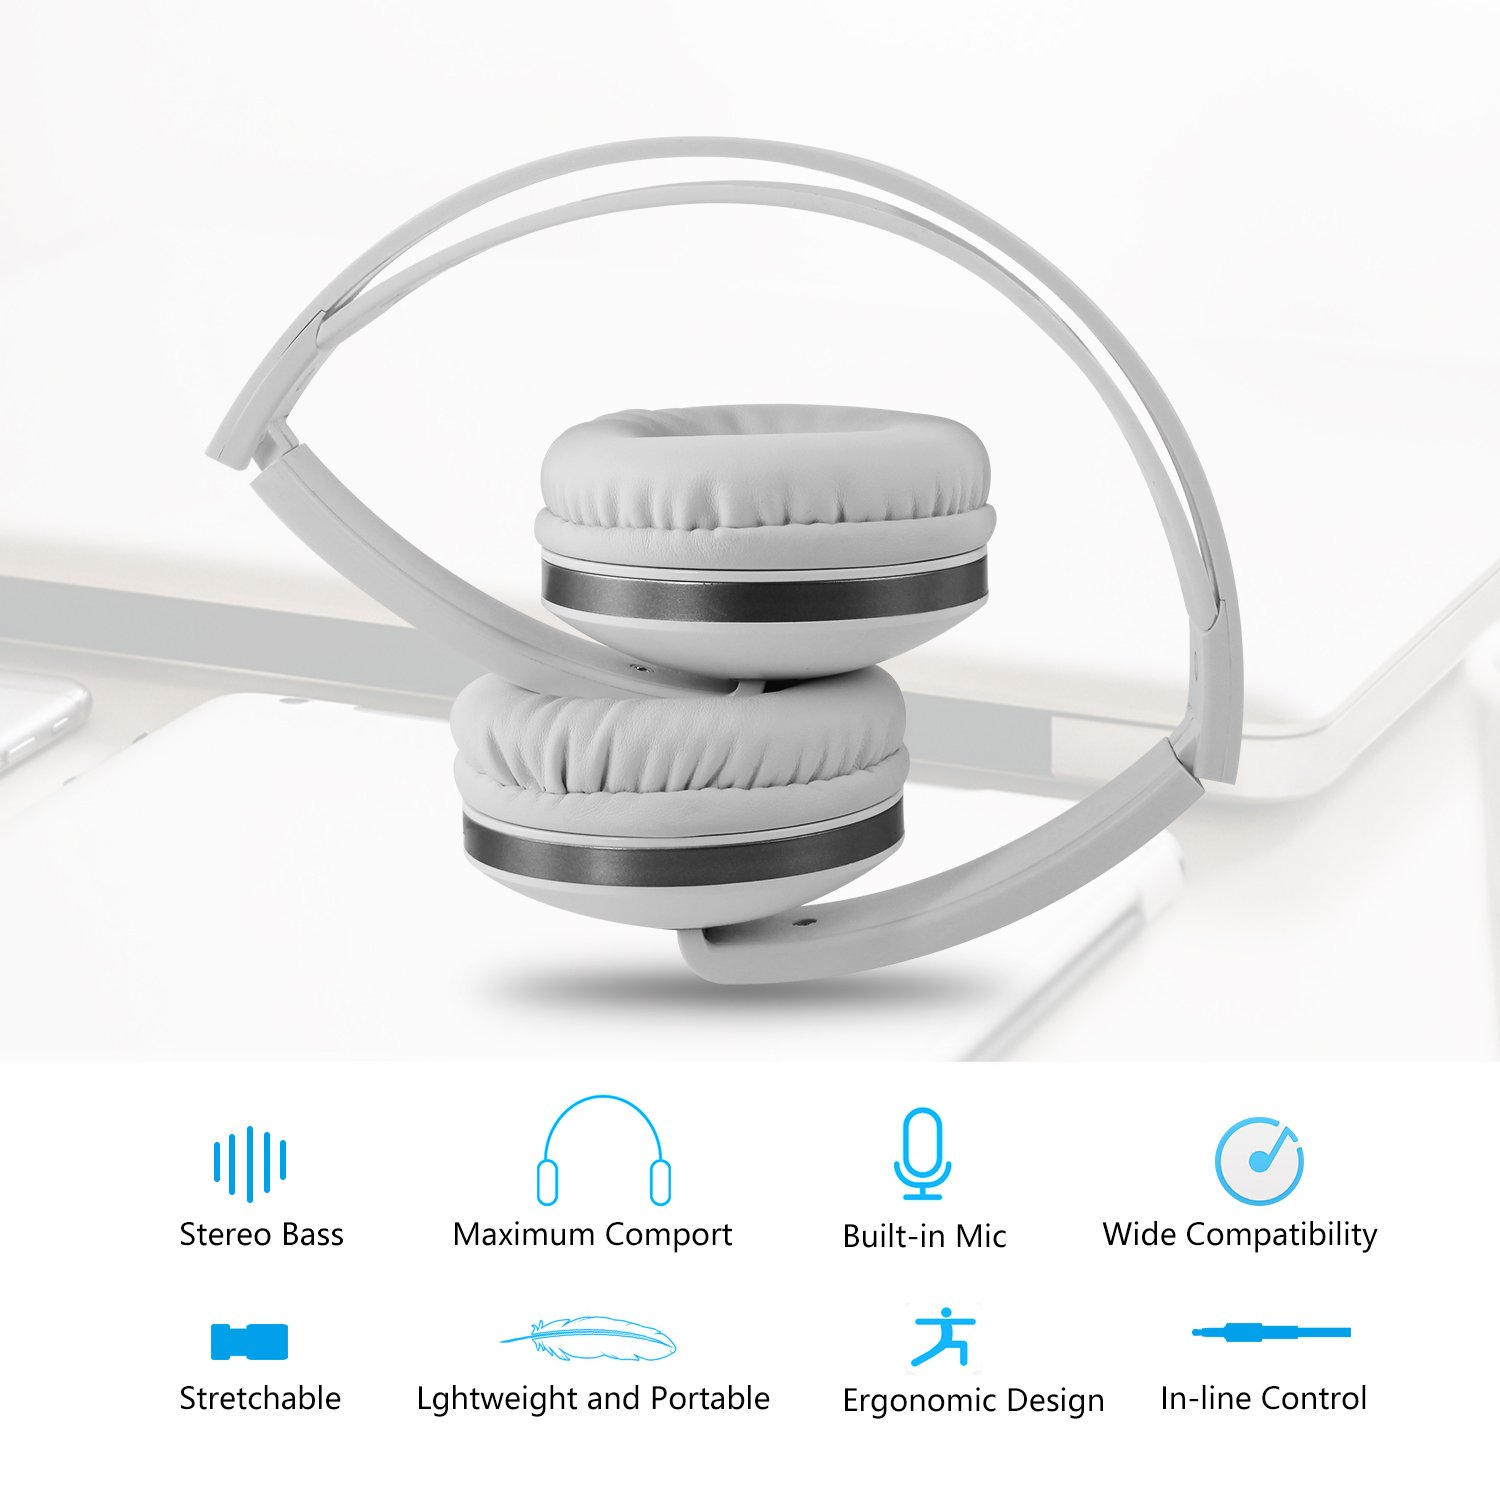 Foldable Headphones with Microphone, Vive Comb Stereo Lightweight Adjustable PC Headset Wired Headphones with Volume Control for Tablet, Smartphones, Video Game, Laptop-White by Vive Comb (Image #8)